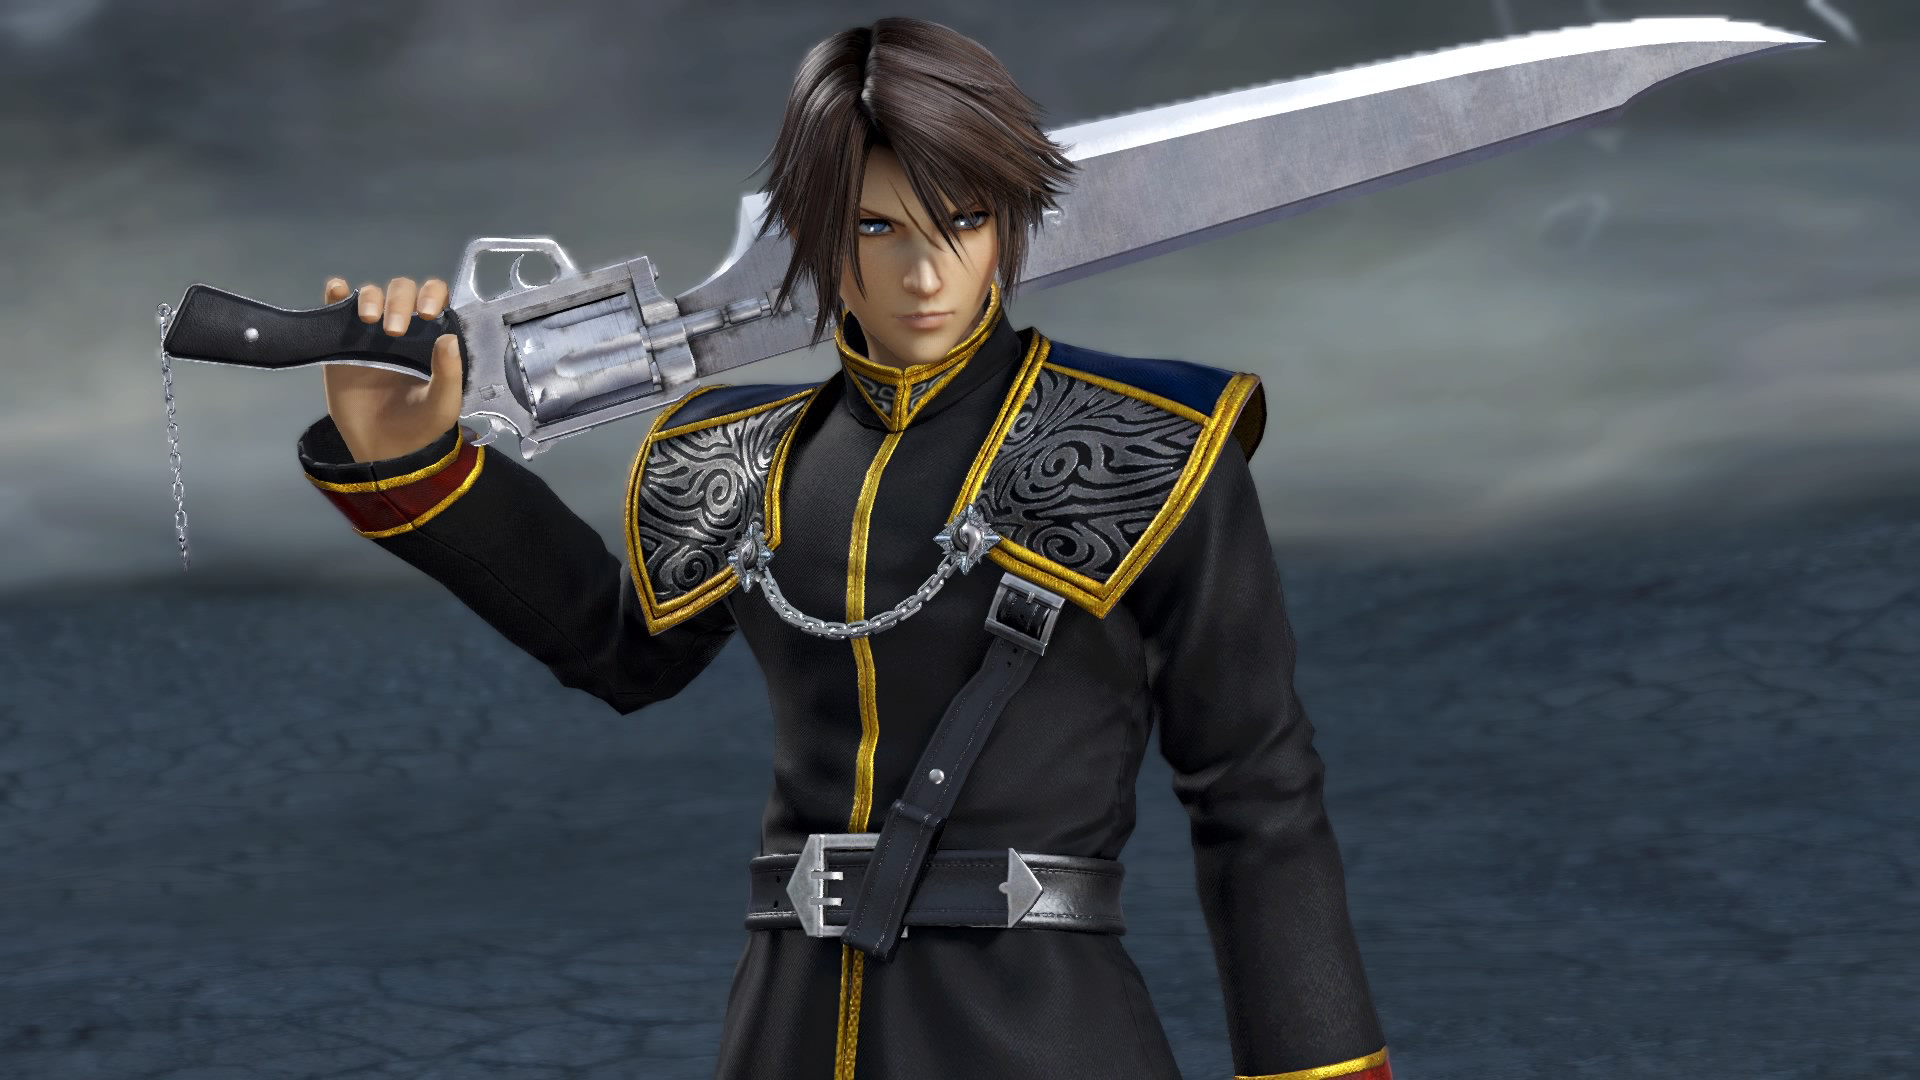 Dff Nt Seed Uniform Appearance Set For Squall Leonhart